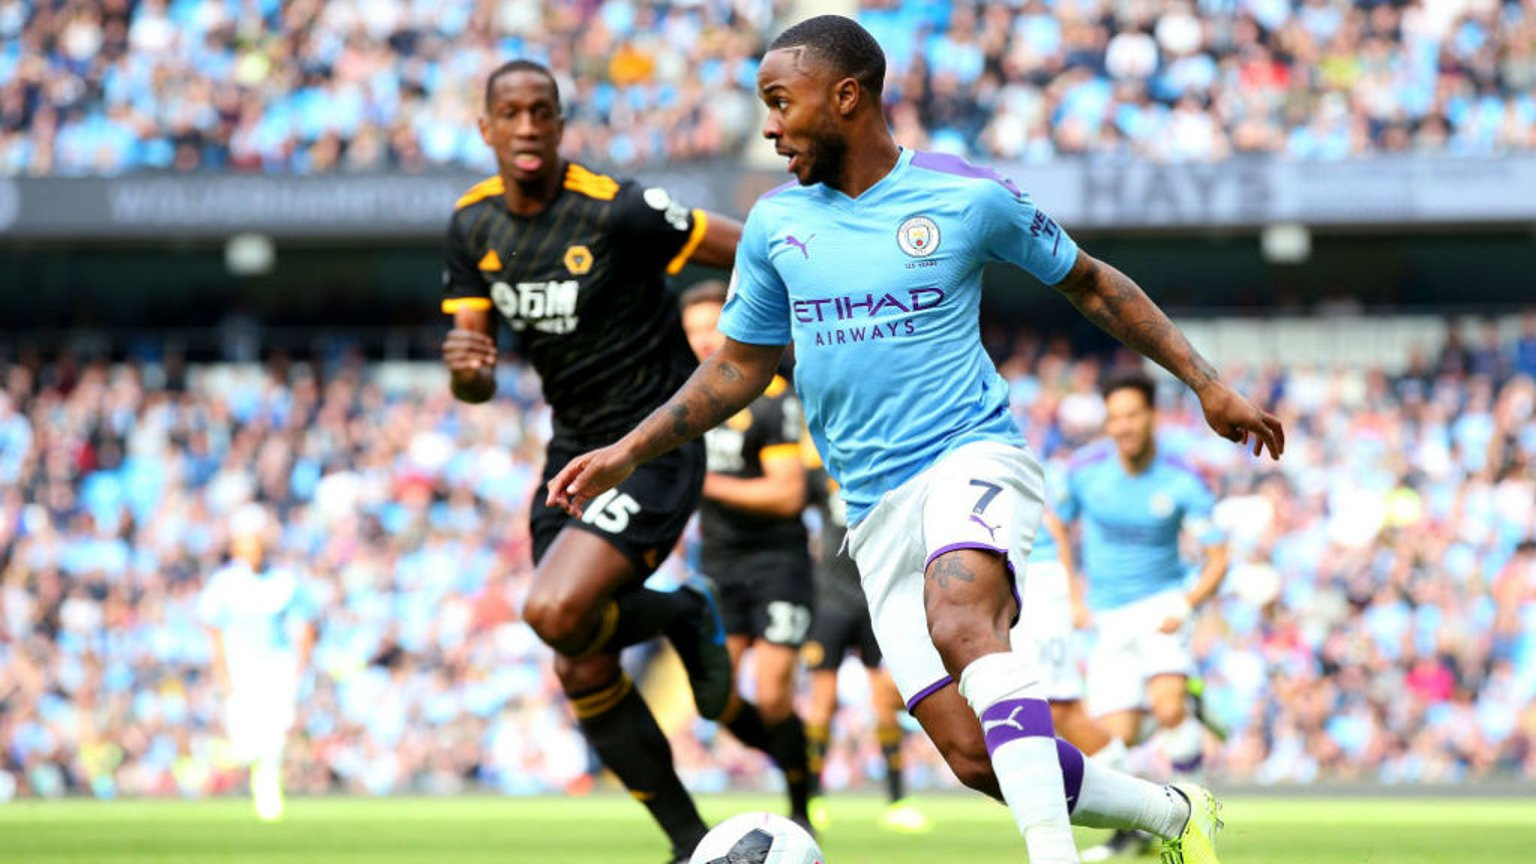 DRIBBLE: Sterling looks to unlock a rigid Wolves defence.